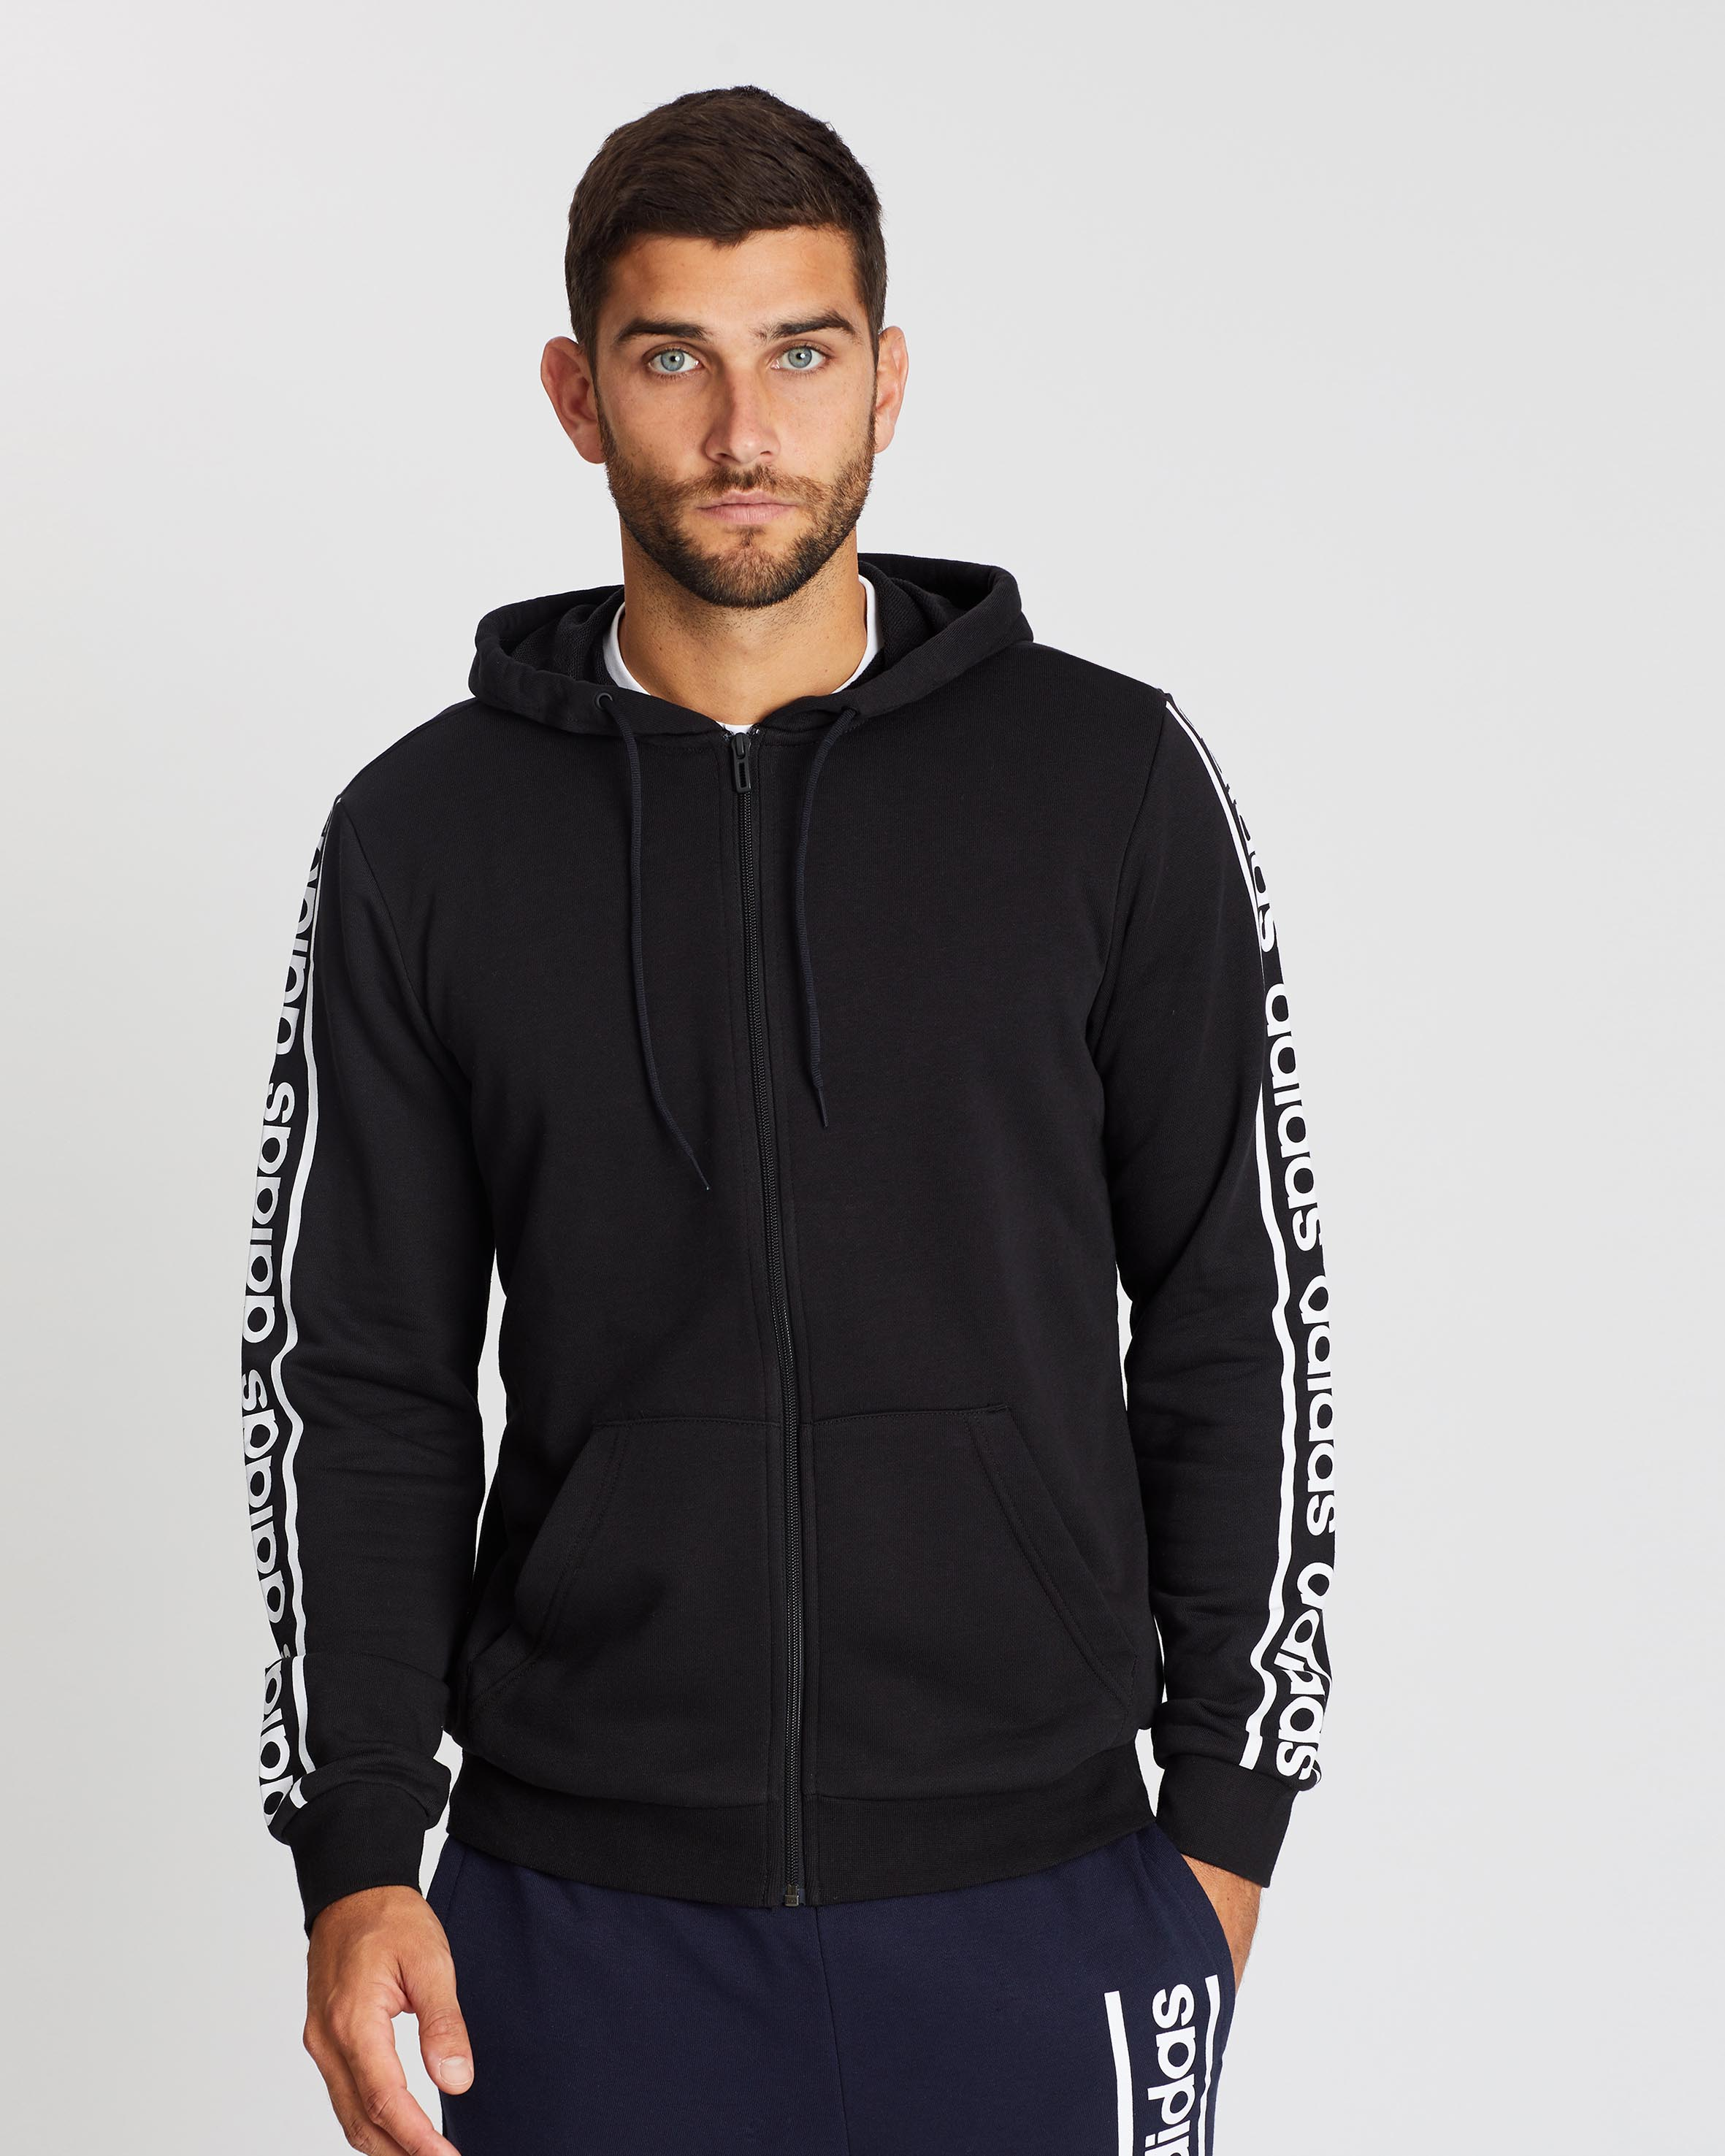 Perfect adidas Men's Long Sleeve Lifestyle Hoodie Cool.